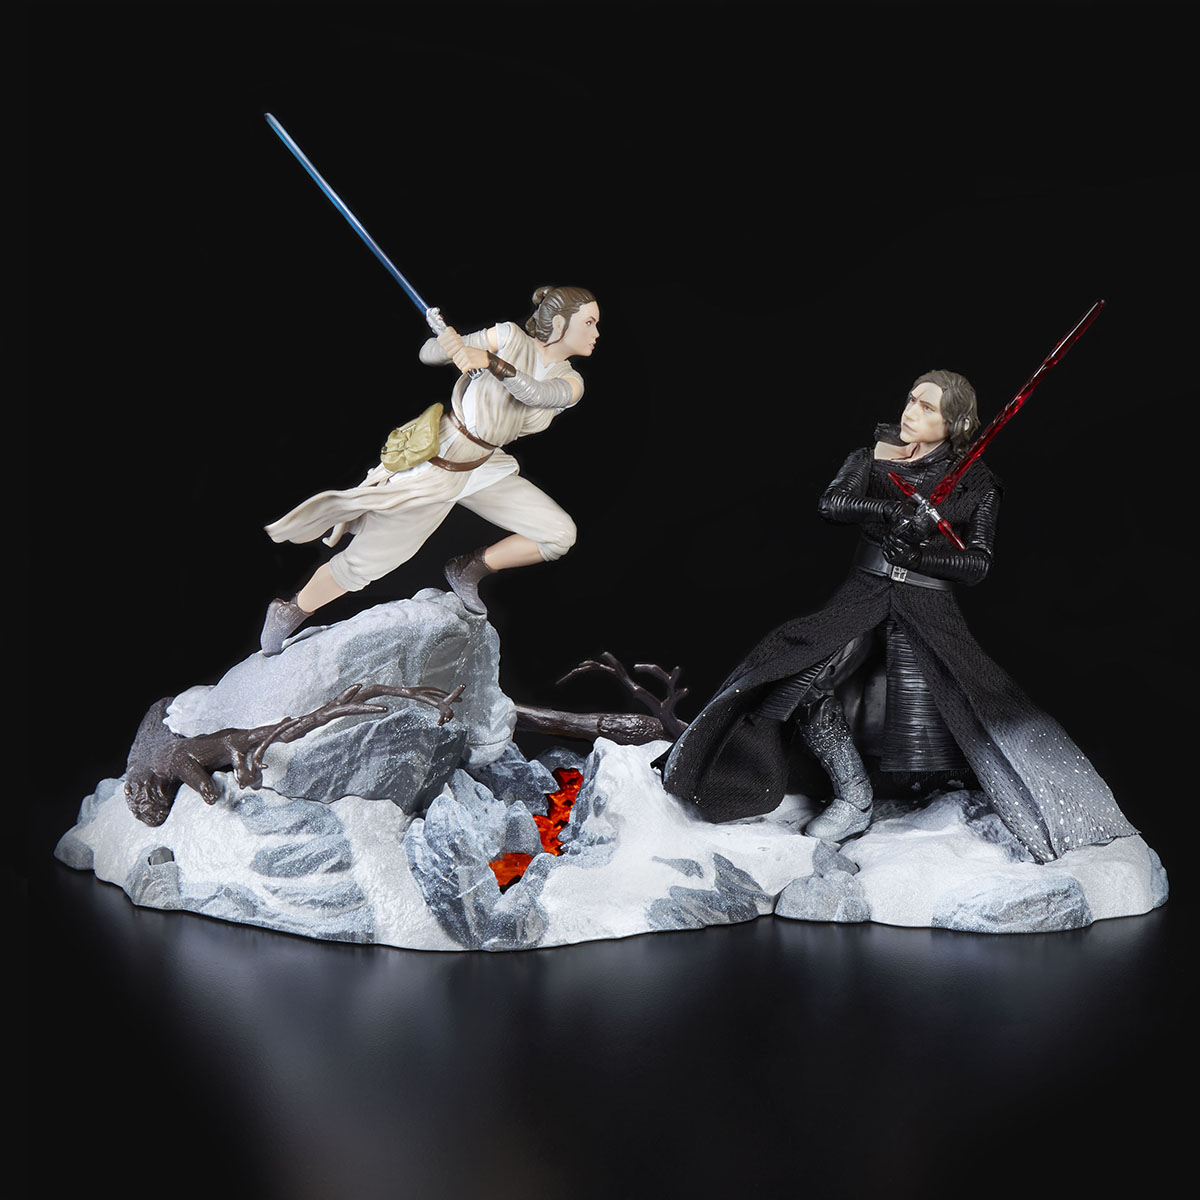 Star Wars: The Black Series Rey & Kylo Ren Centerpiece (Starkiller Base)